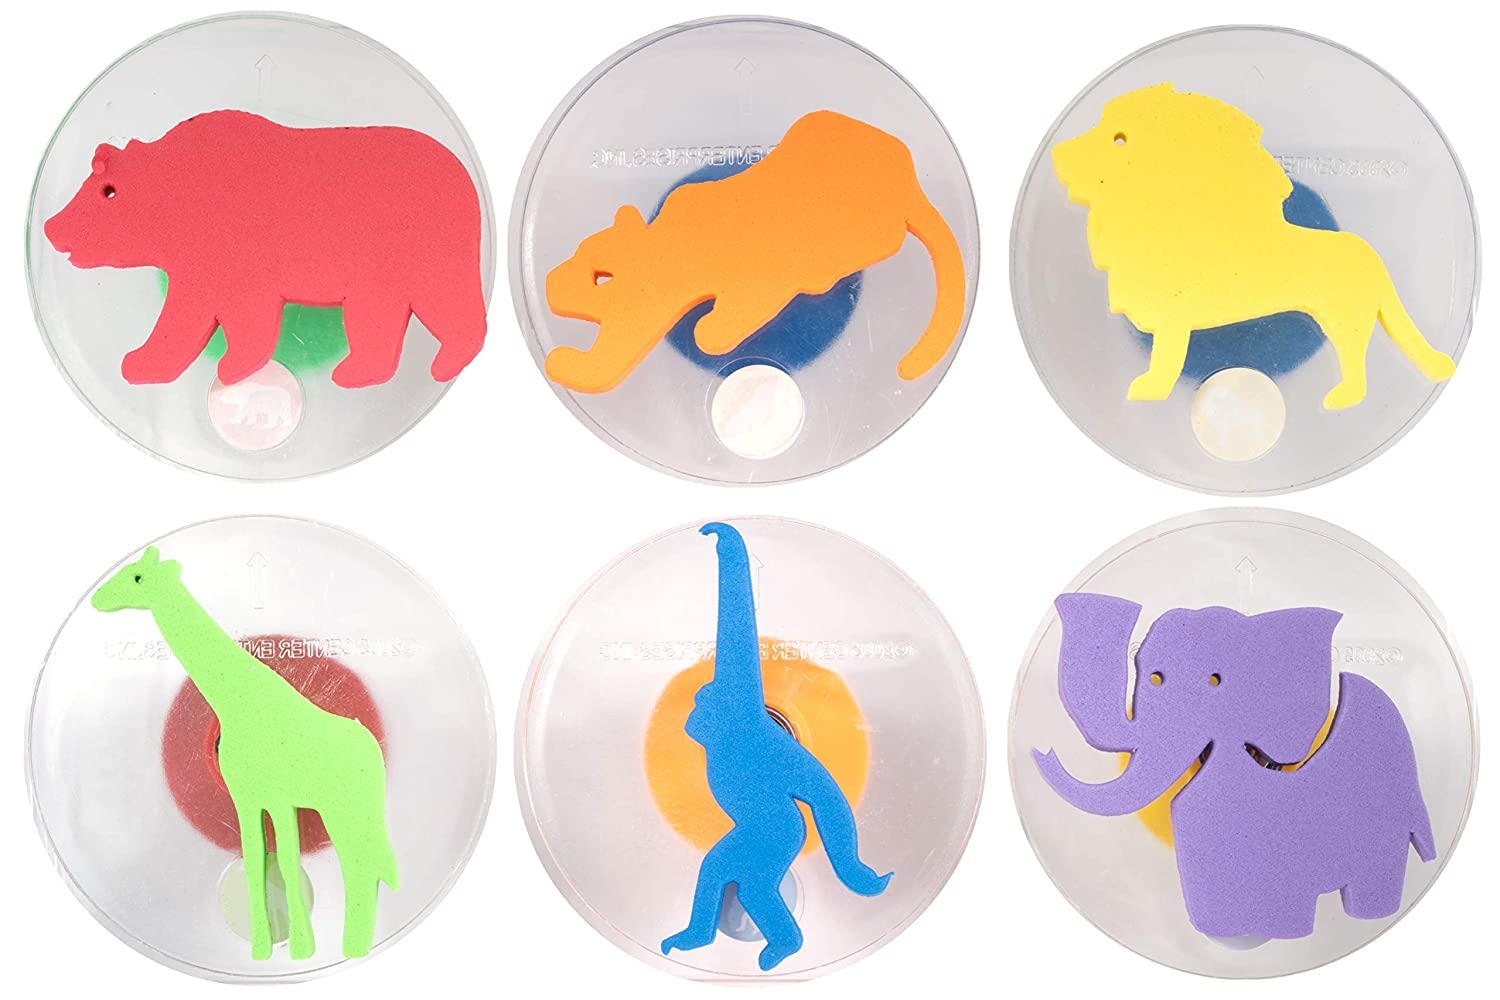 READY 2 LEARN Giant Stampers - Wild Animals - Set of 6 - Easy to Hold Foam Stamps for Kids - Arts and Crafts Stamps for Displays, Posters, Signs and DIY Projects, Clear, Model: CE6769